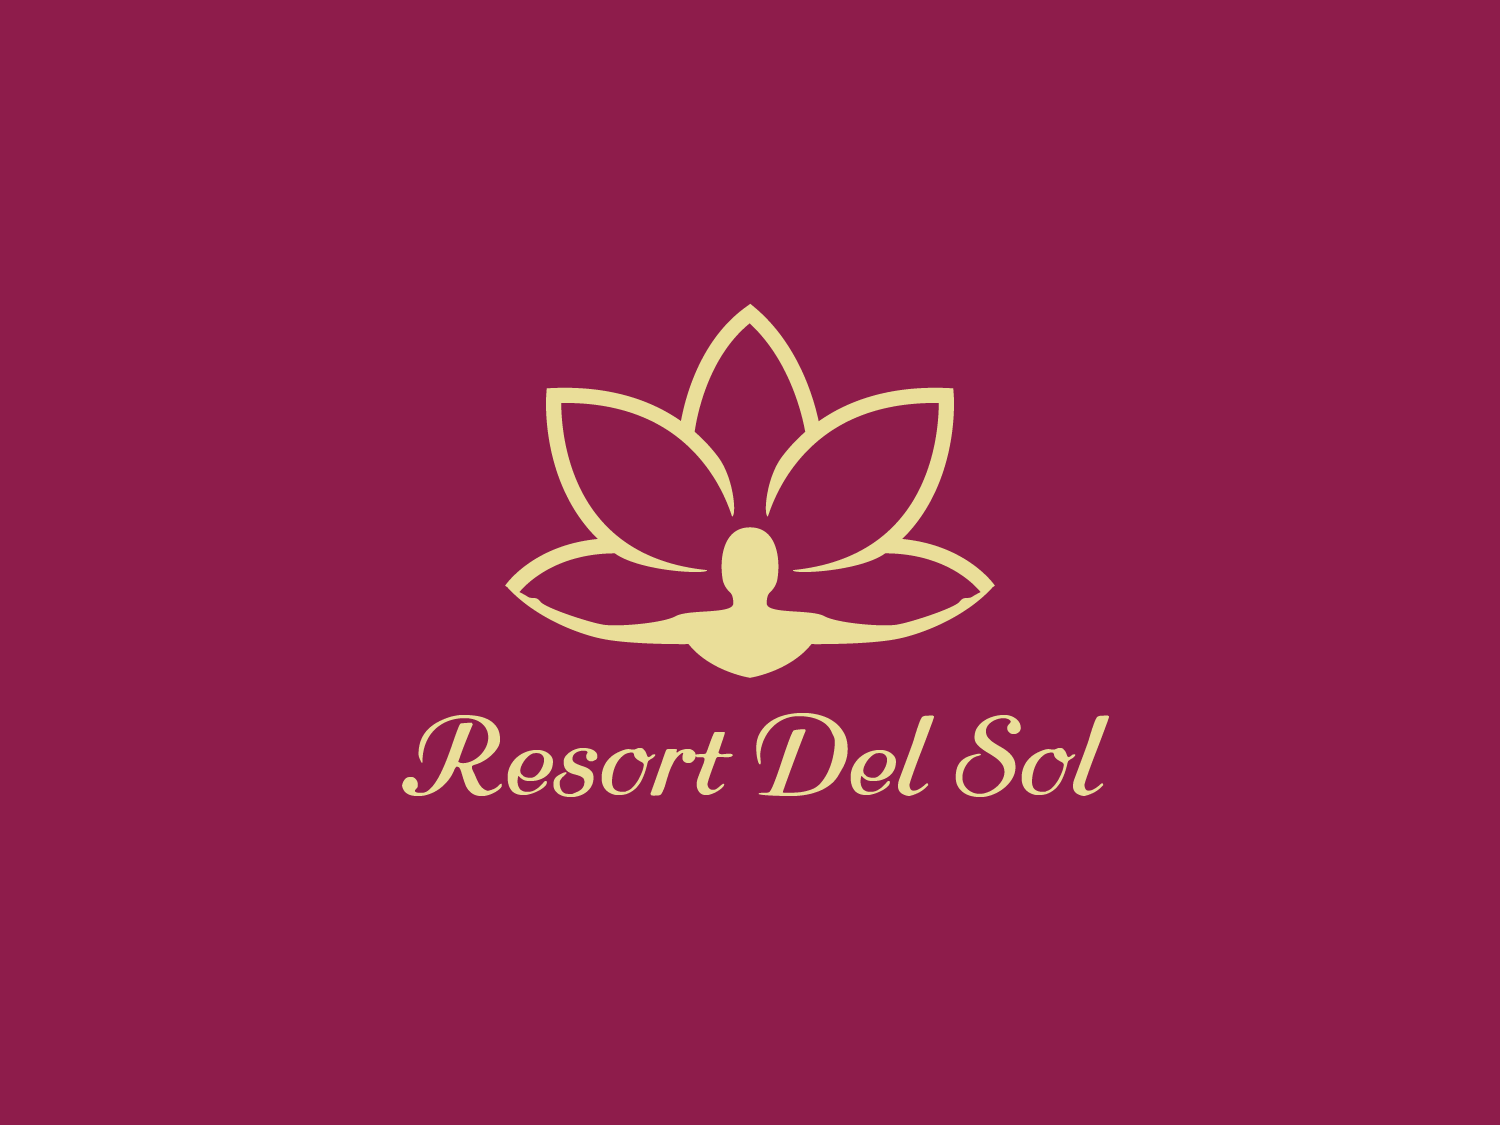 Resort Del Sol spirit resort lotus flower graphicdesign vector graphic logodesign illustrator branding illustration logo design